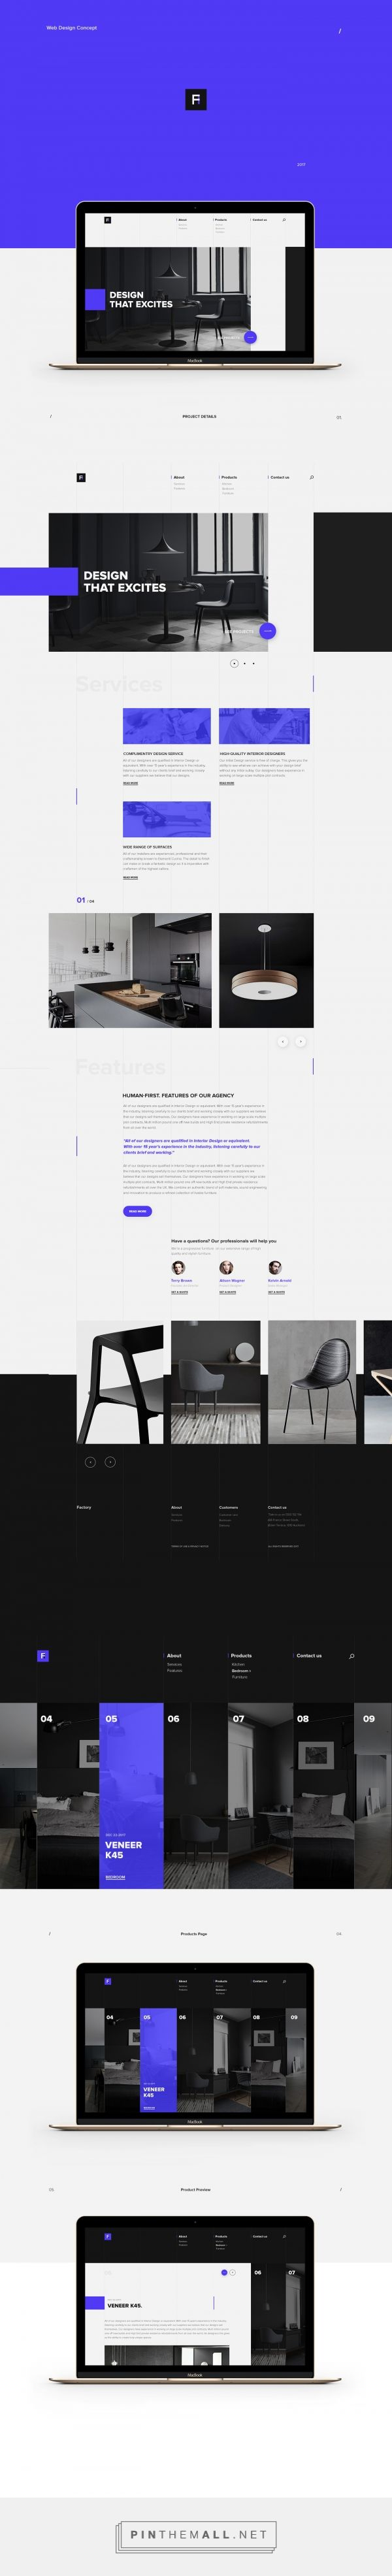 Factory Furniture Web Design by Yaroslava Velichko | Fivestar Branding Agency – Design and Branding Agency & Curated Inspiration Gallery  #furniturewebdesign #website #webdesign